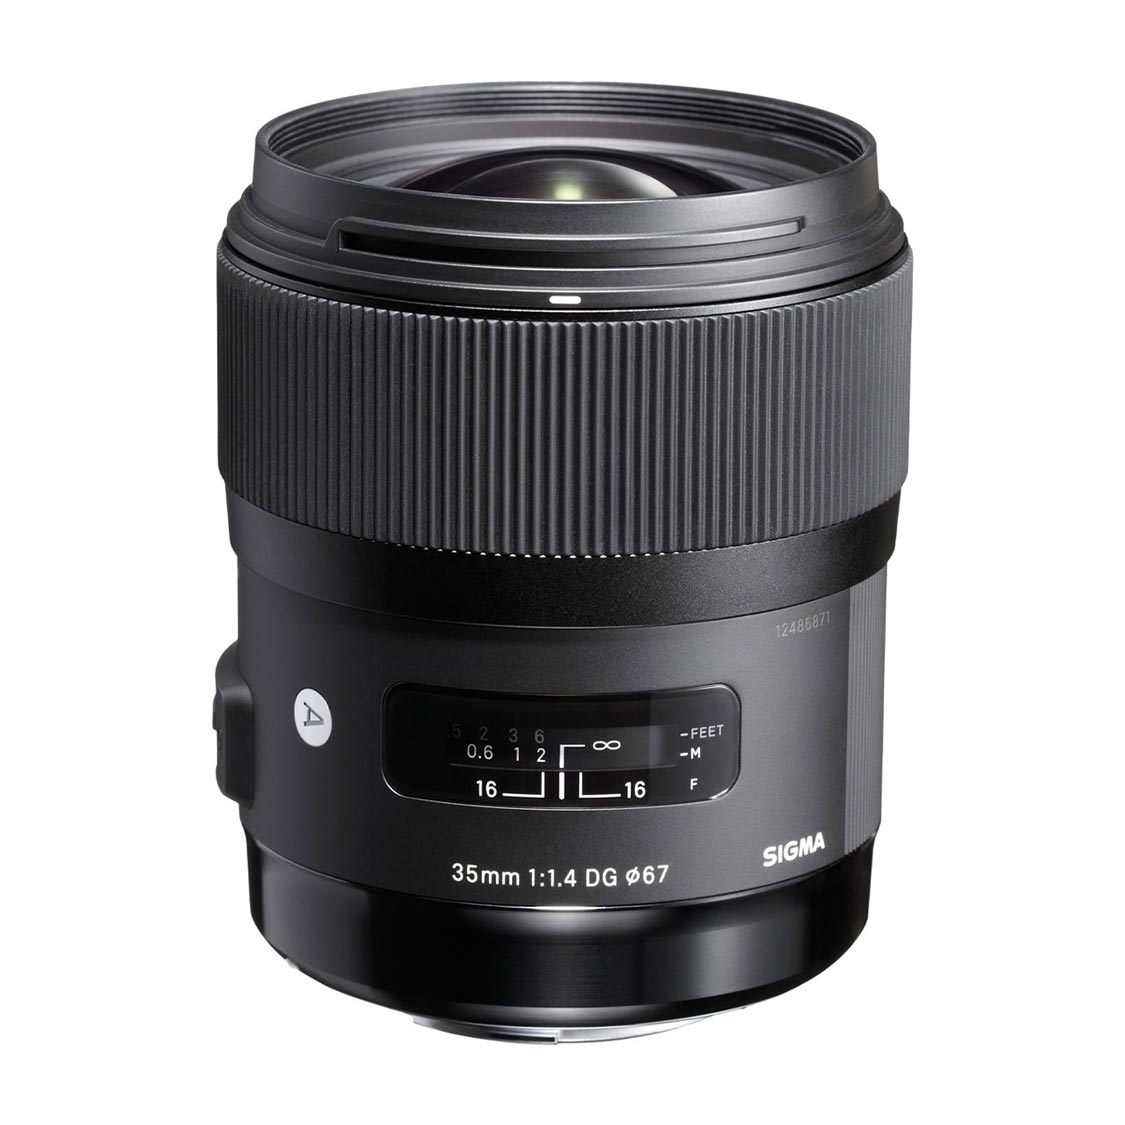 Sigma 35mm F1.4 DG HSM Art Lens for Sony E-mount